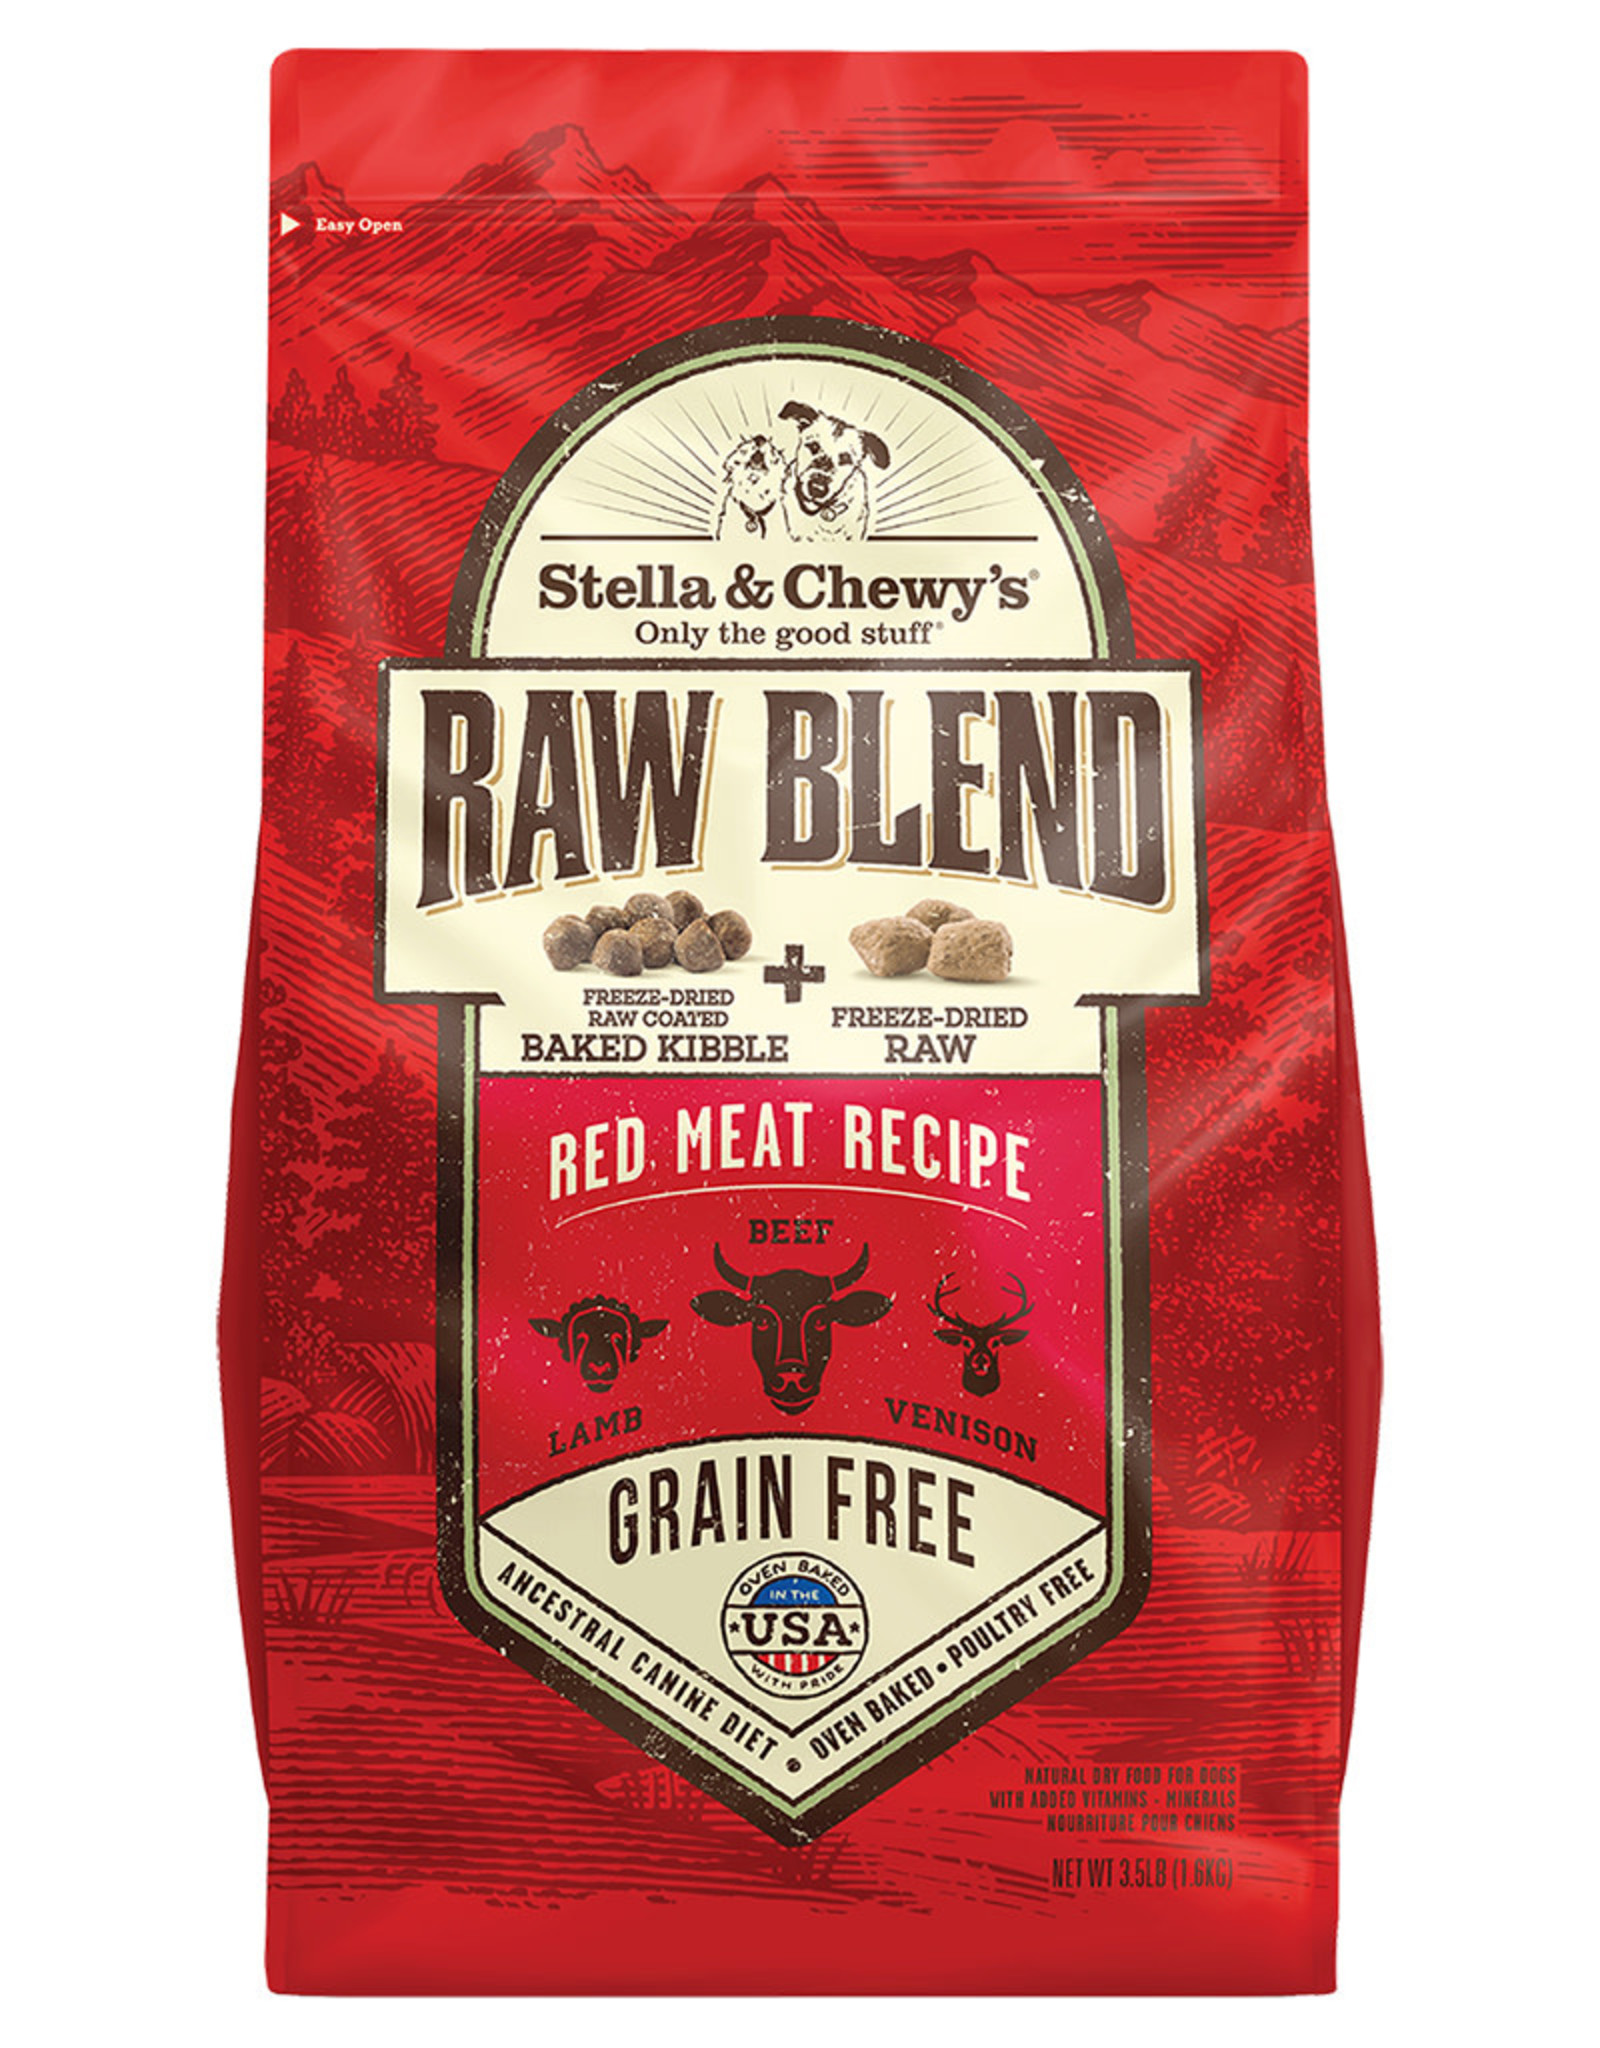 Stella & chewy's Stella and chewys Beef, Lamb & Venison 3.5LB (6)